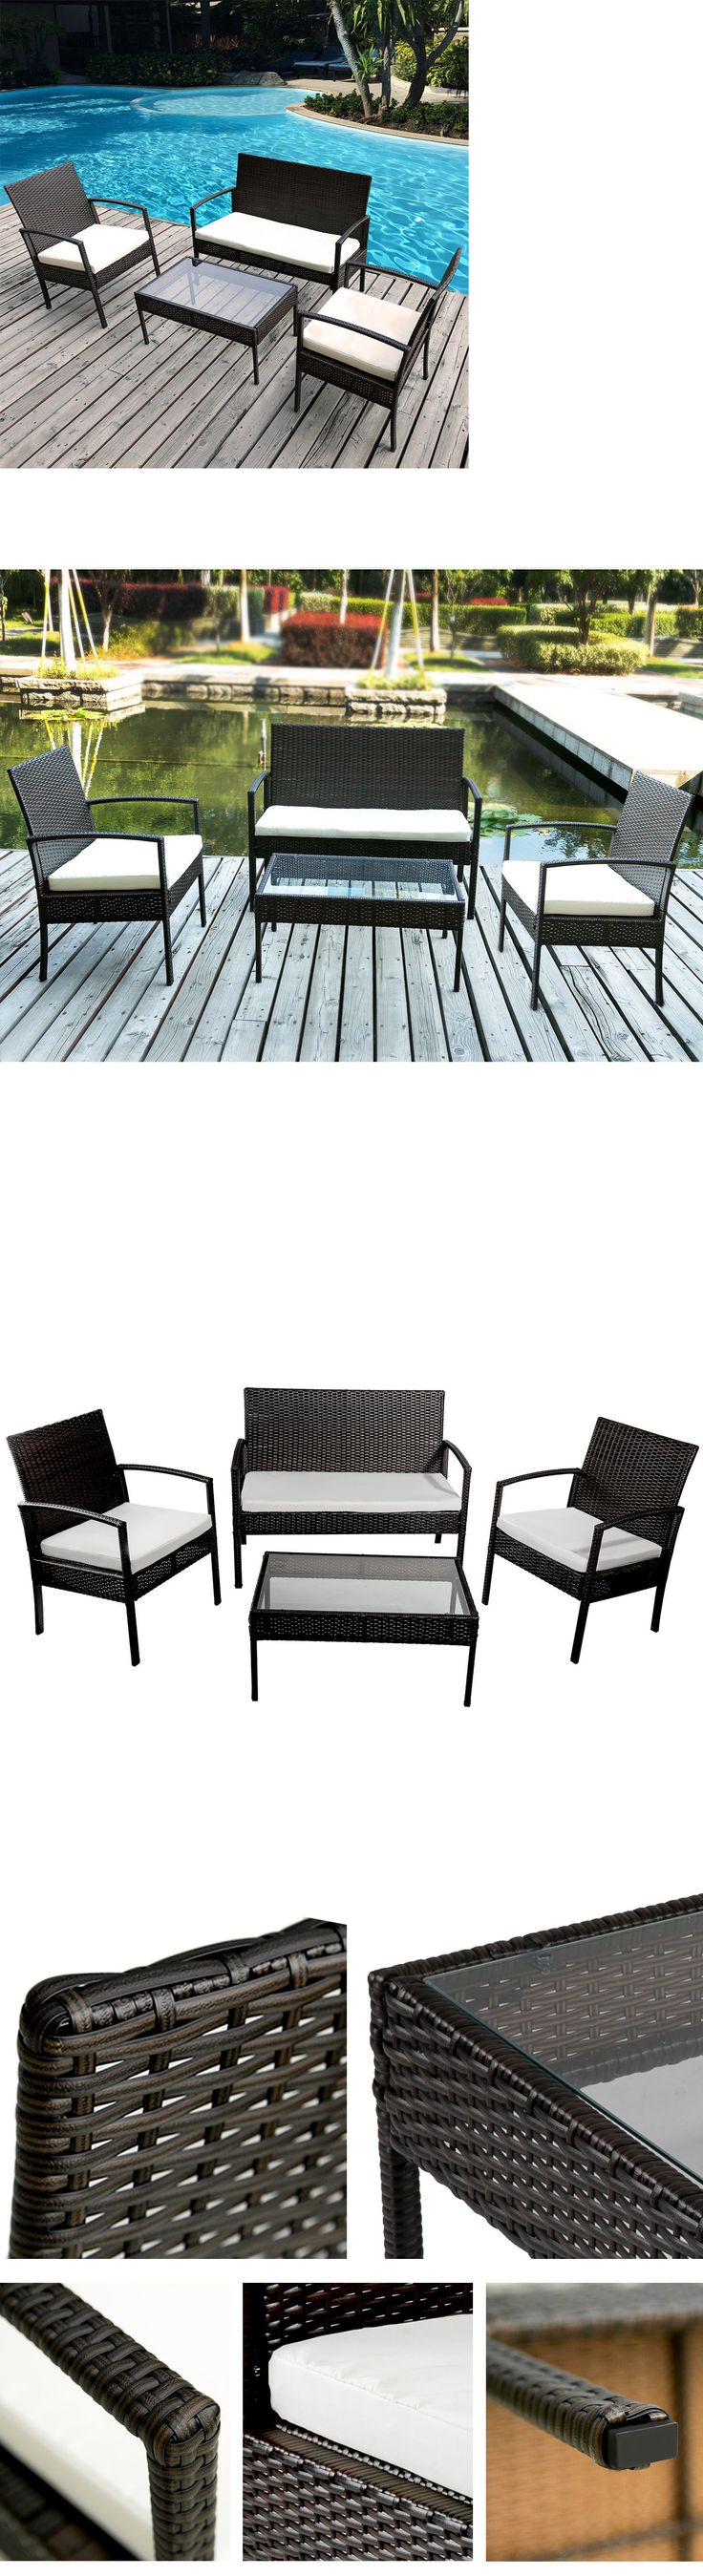 Best 25 Rattan furniture set ideas only on Pinterest